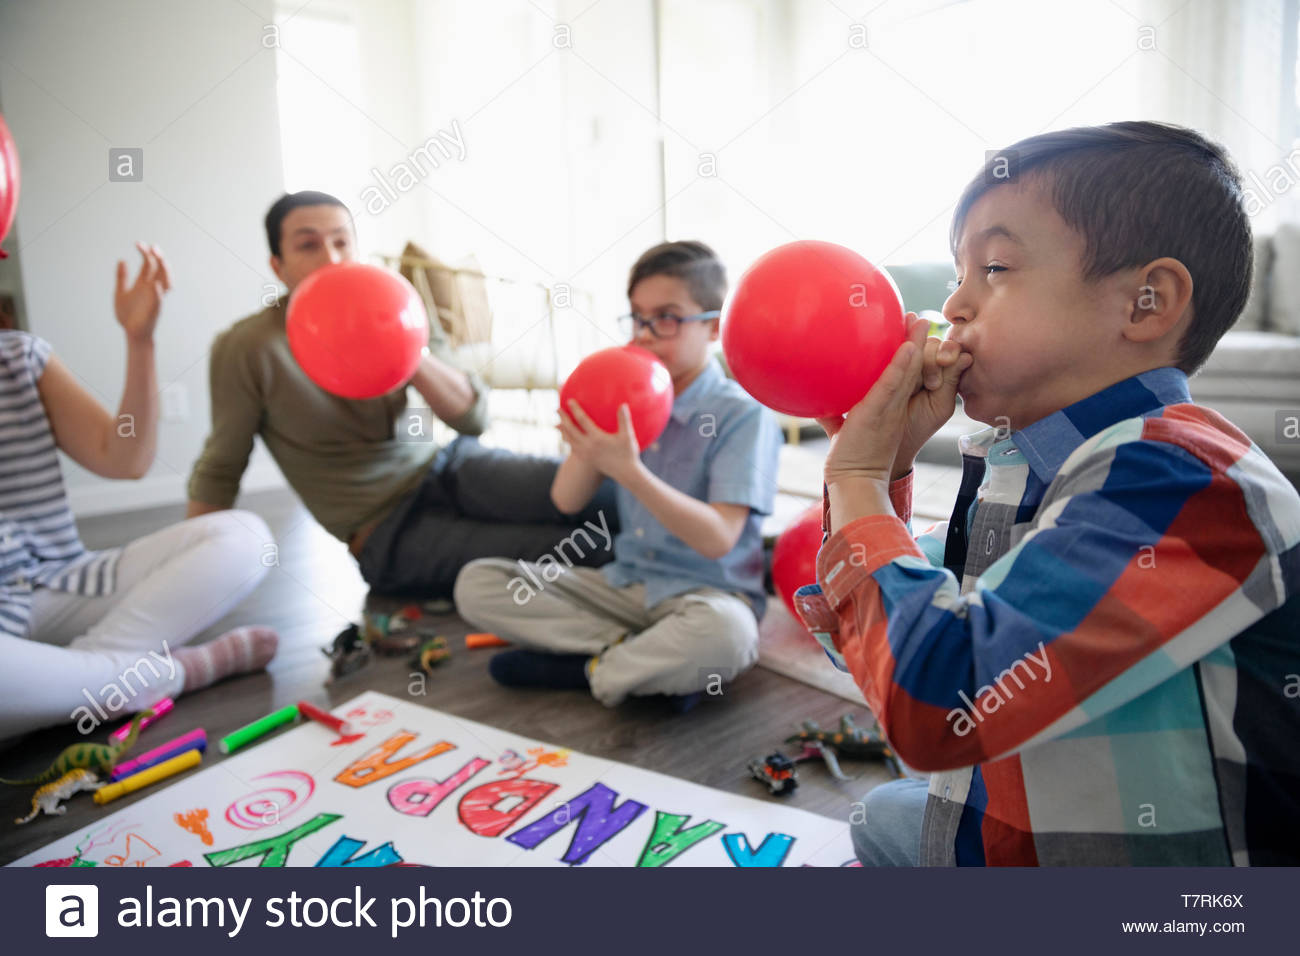 Family blowing up birthday balloons - Stock Image